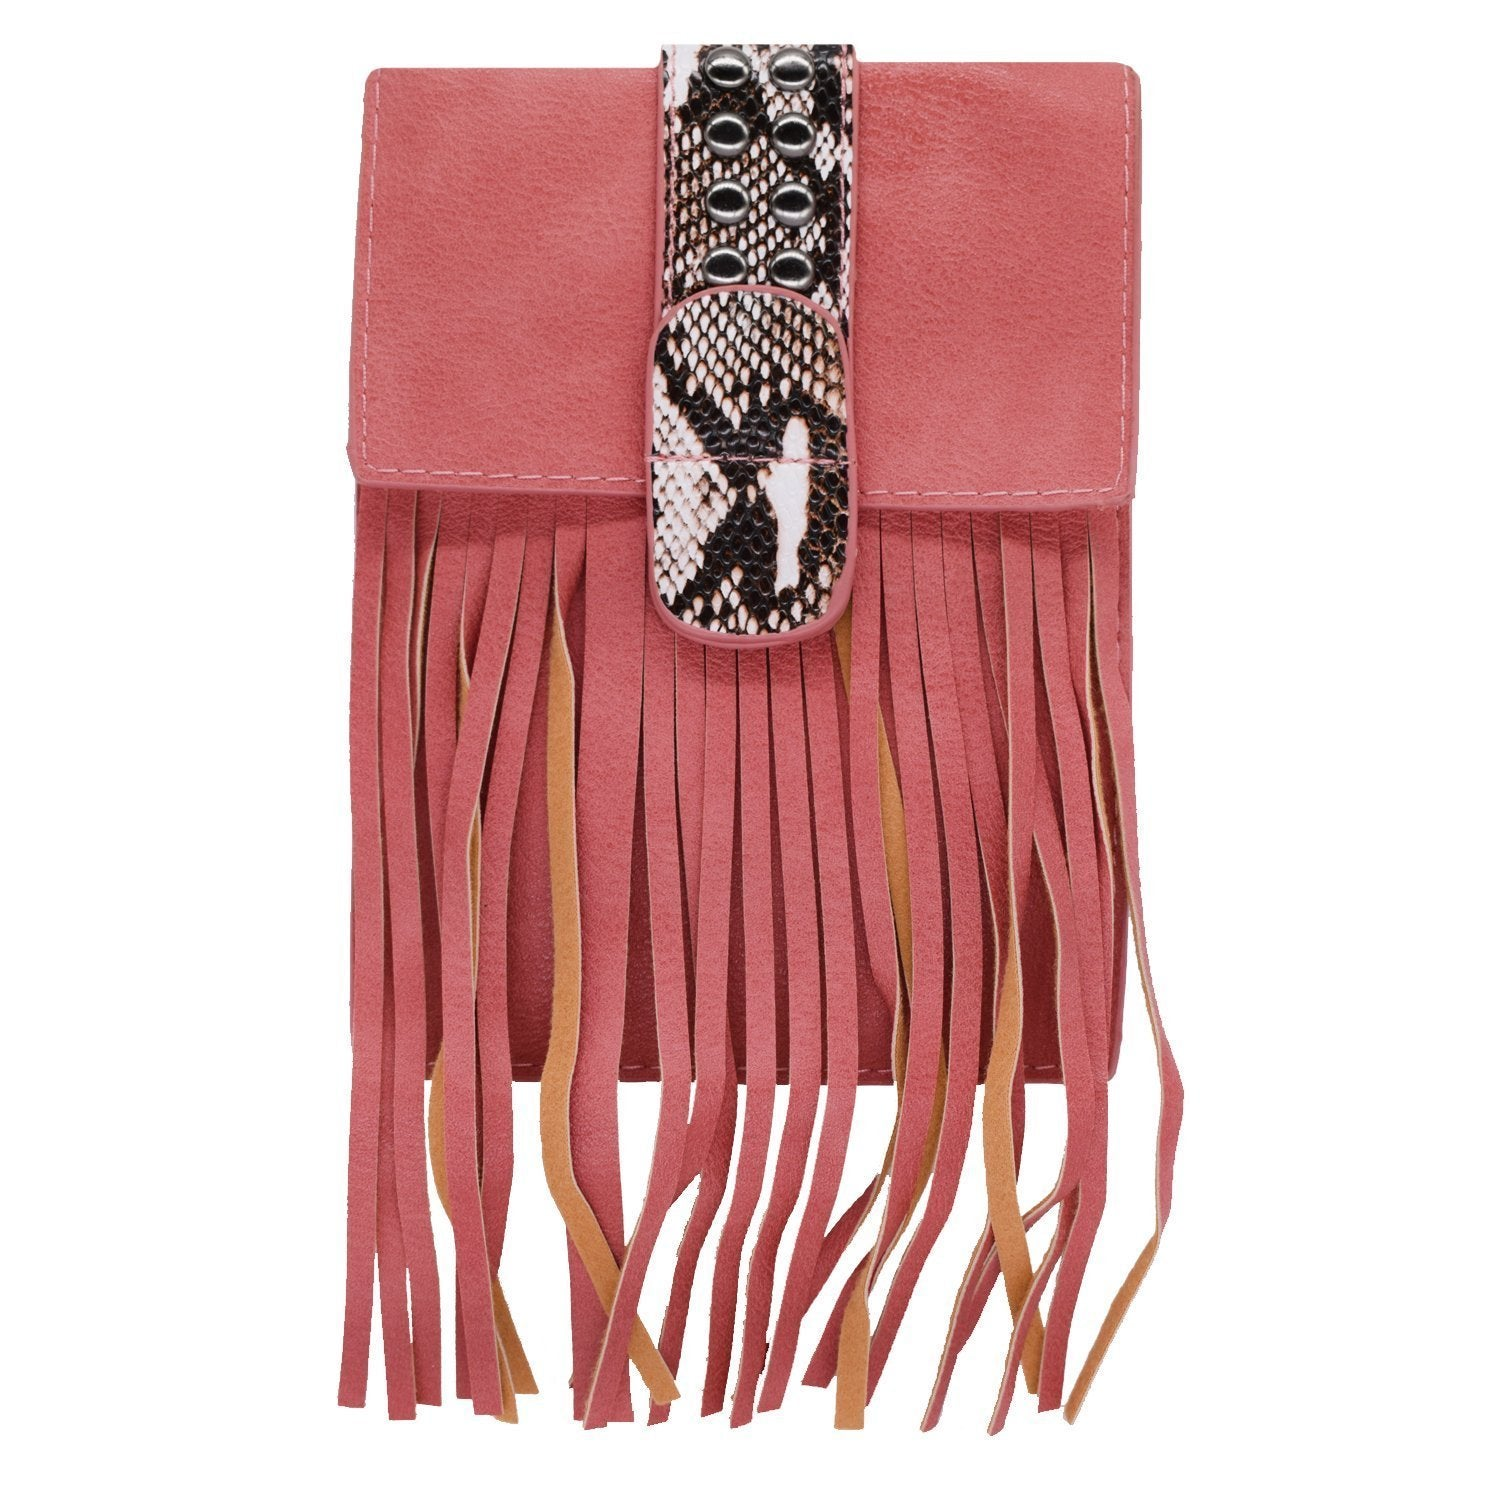 Small Fringes Sling Bag (Pink) - Bagaholics Gift